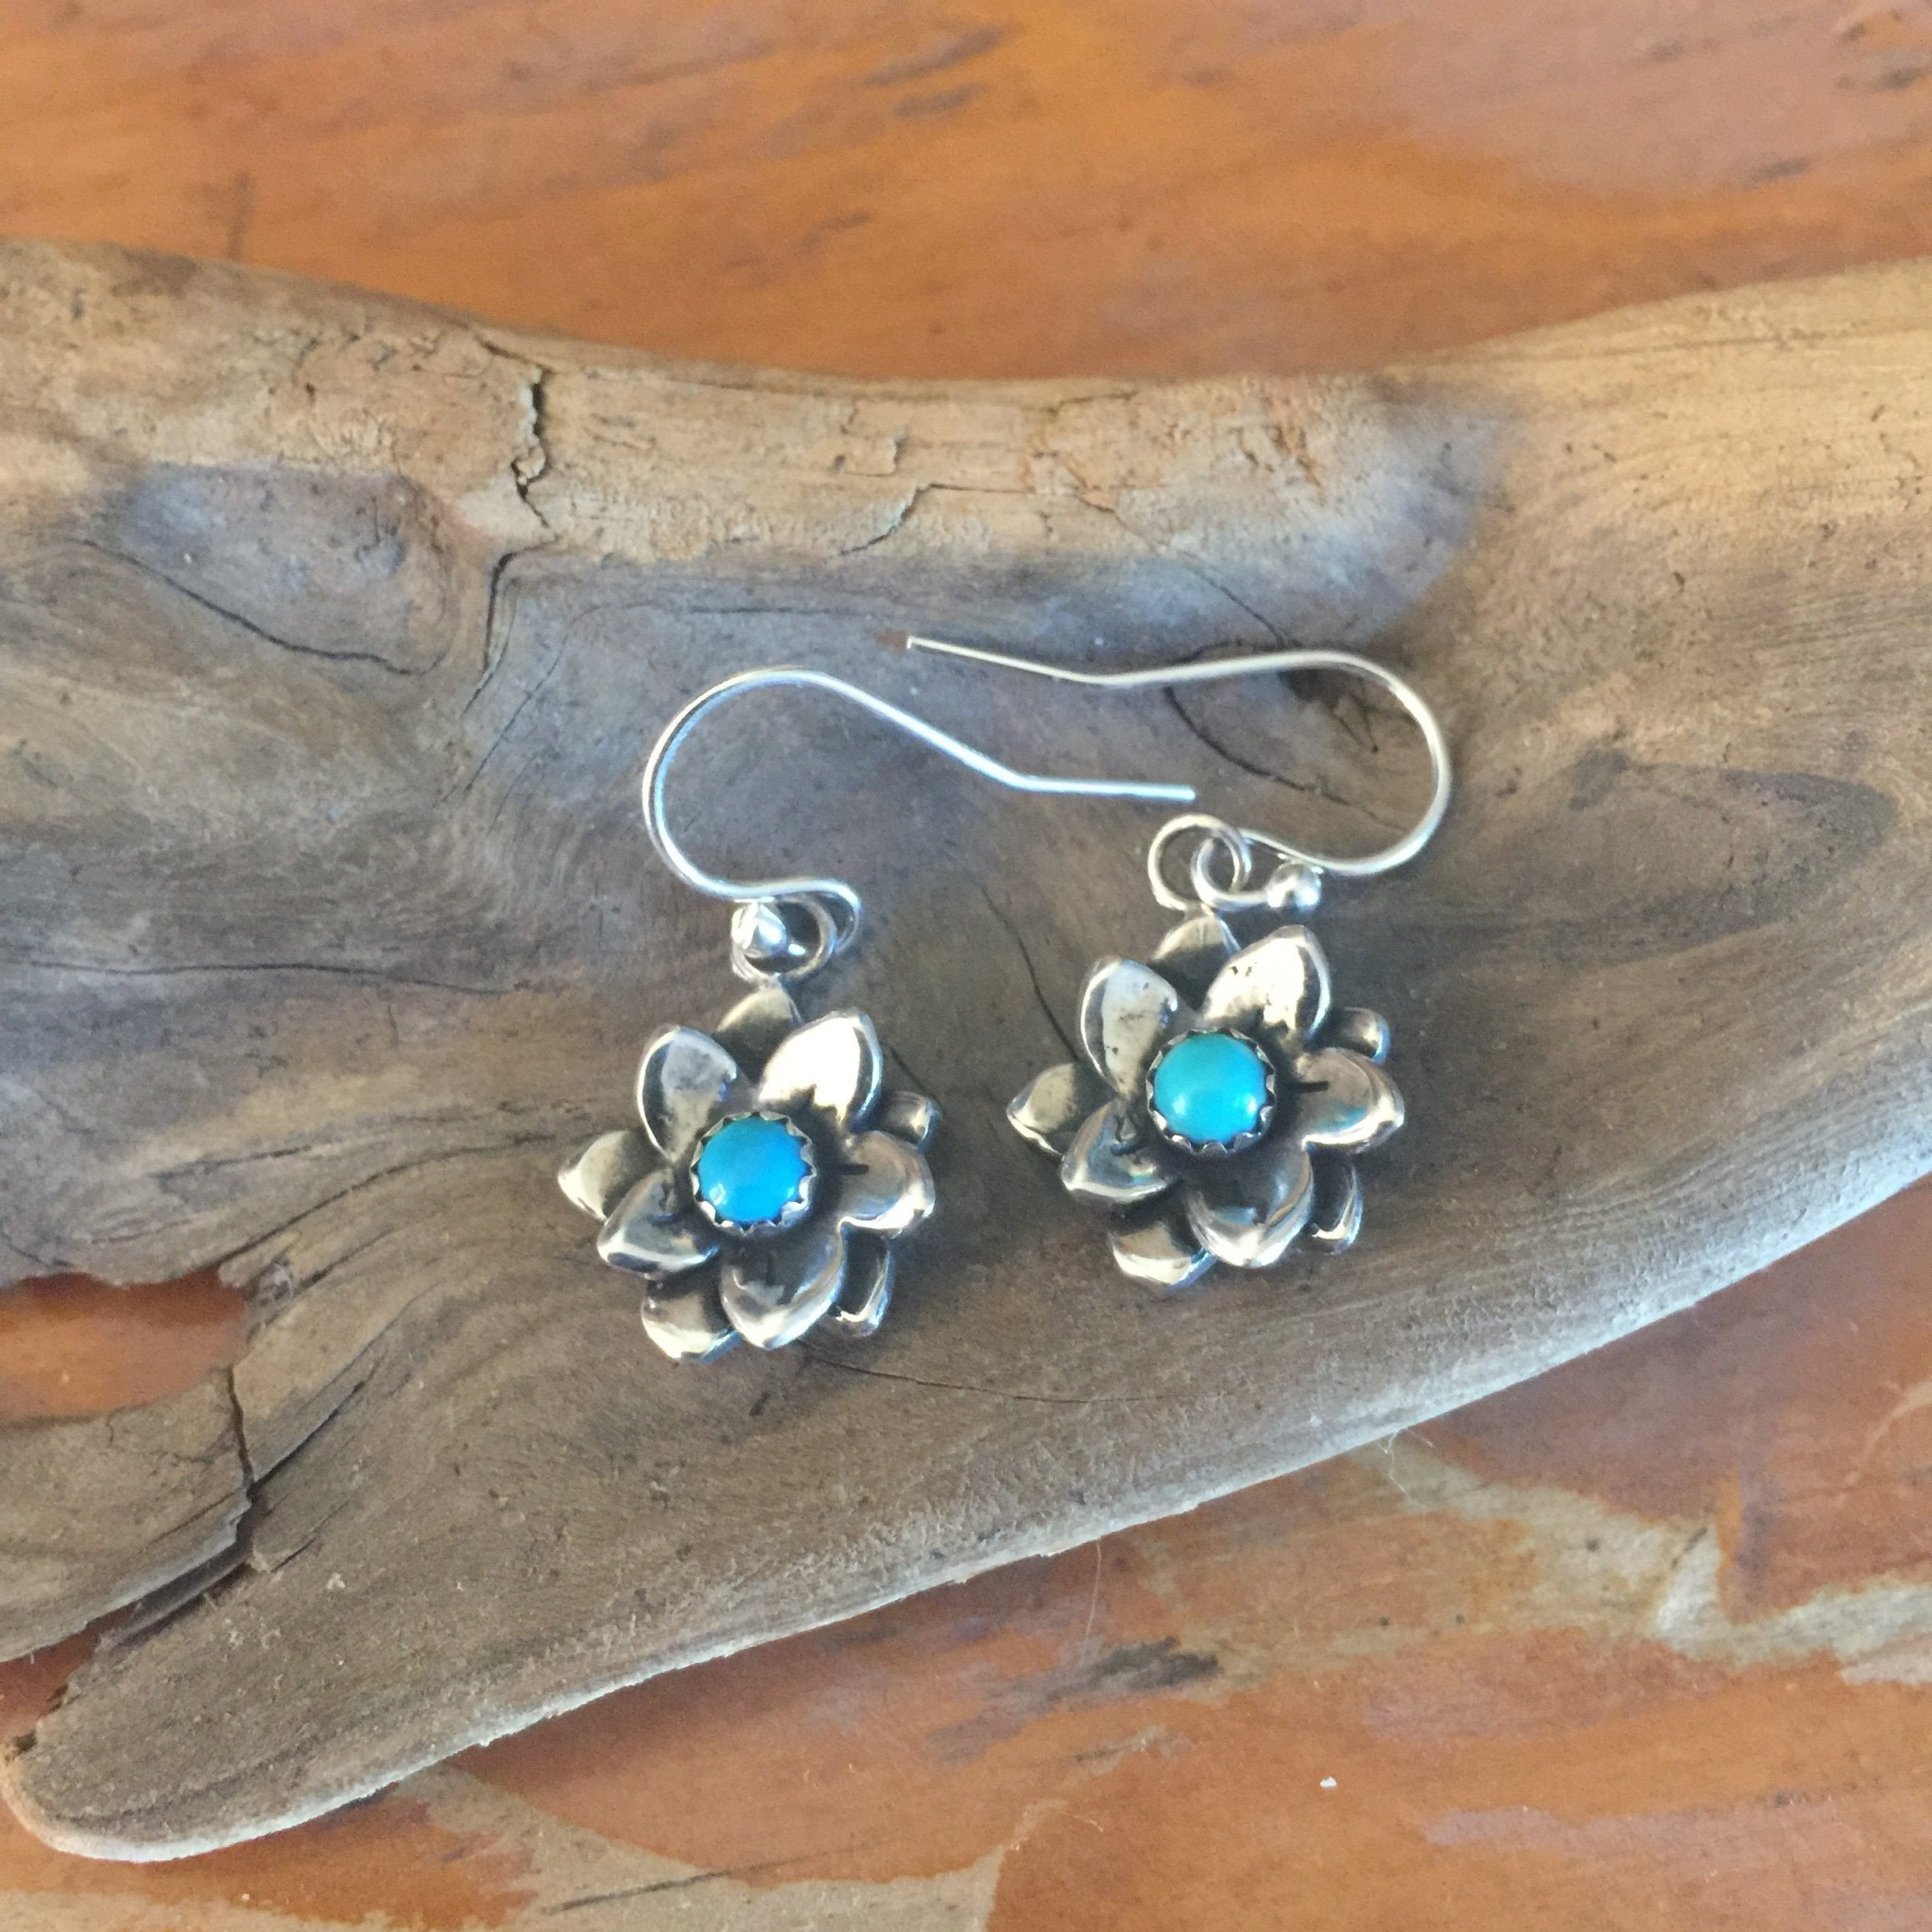 25% OFF Desert Flower Garnet or Turquoise Earrings E164